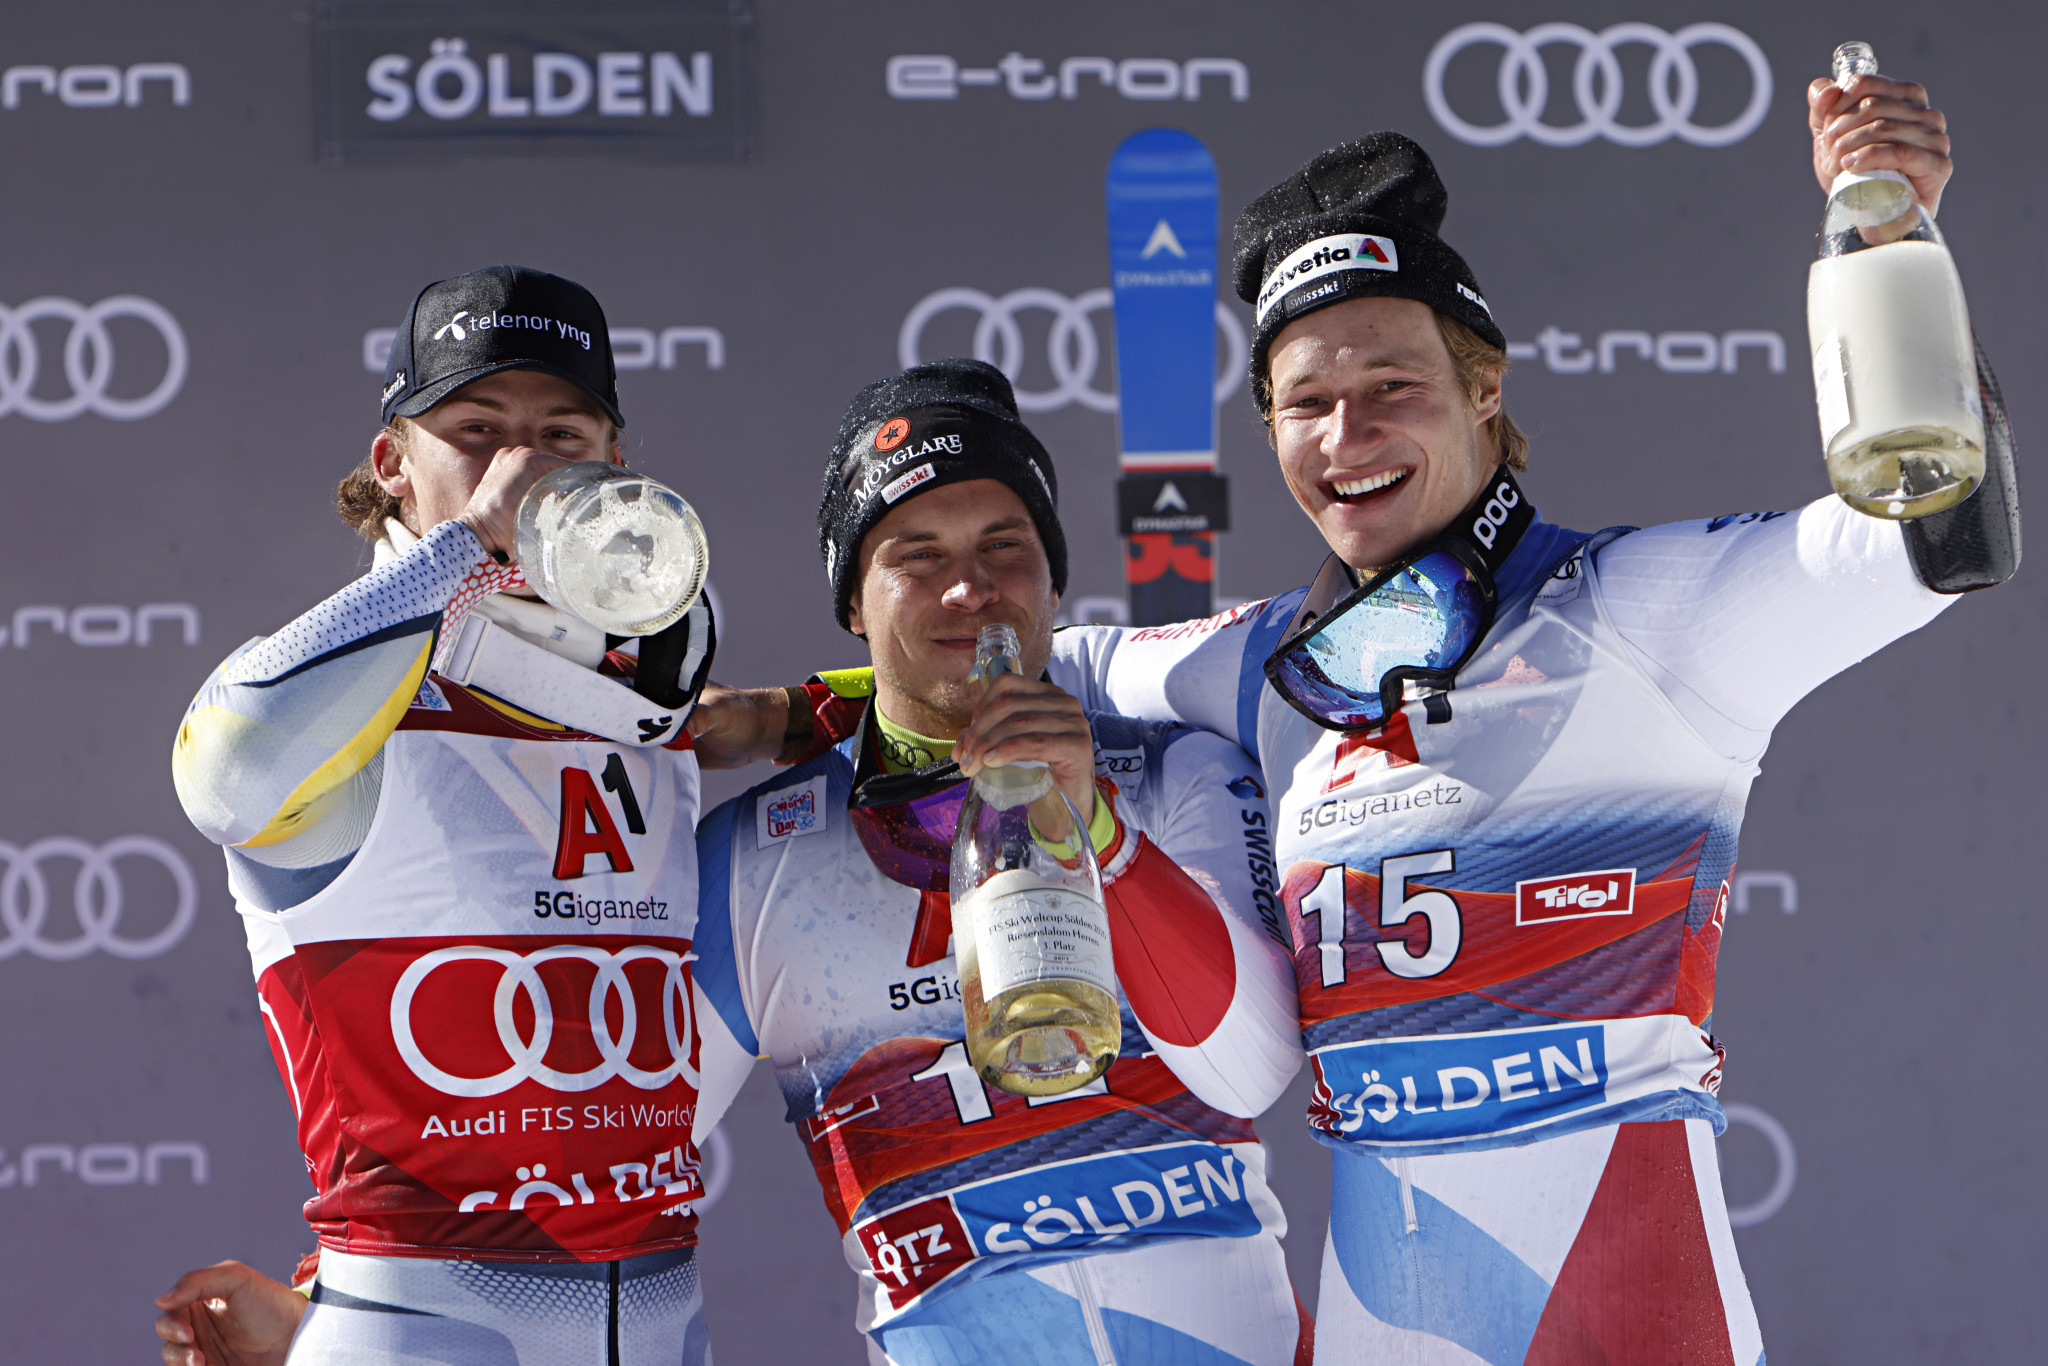 Neither Lucas Braathen, left, or Gino Caviezel, centre, had made a World Cup podium before  ©Getty Images